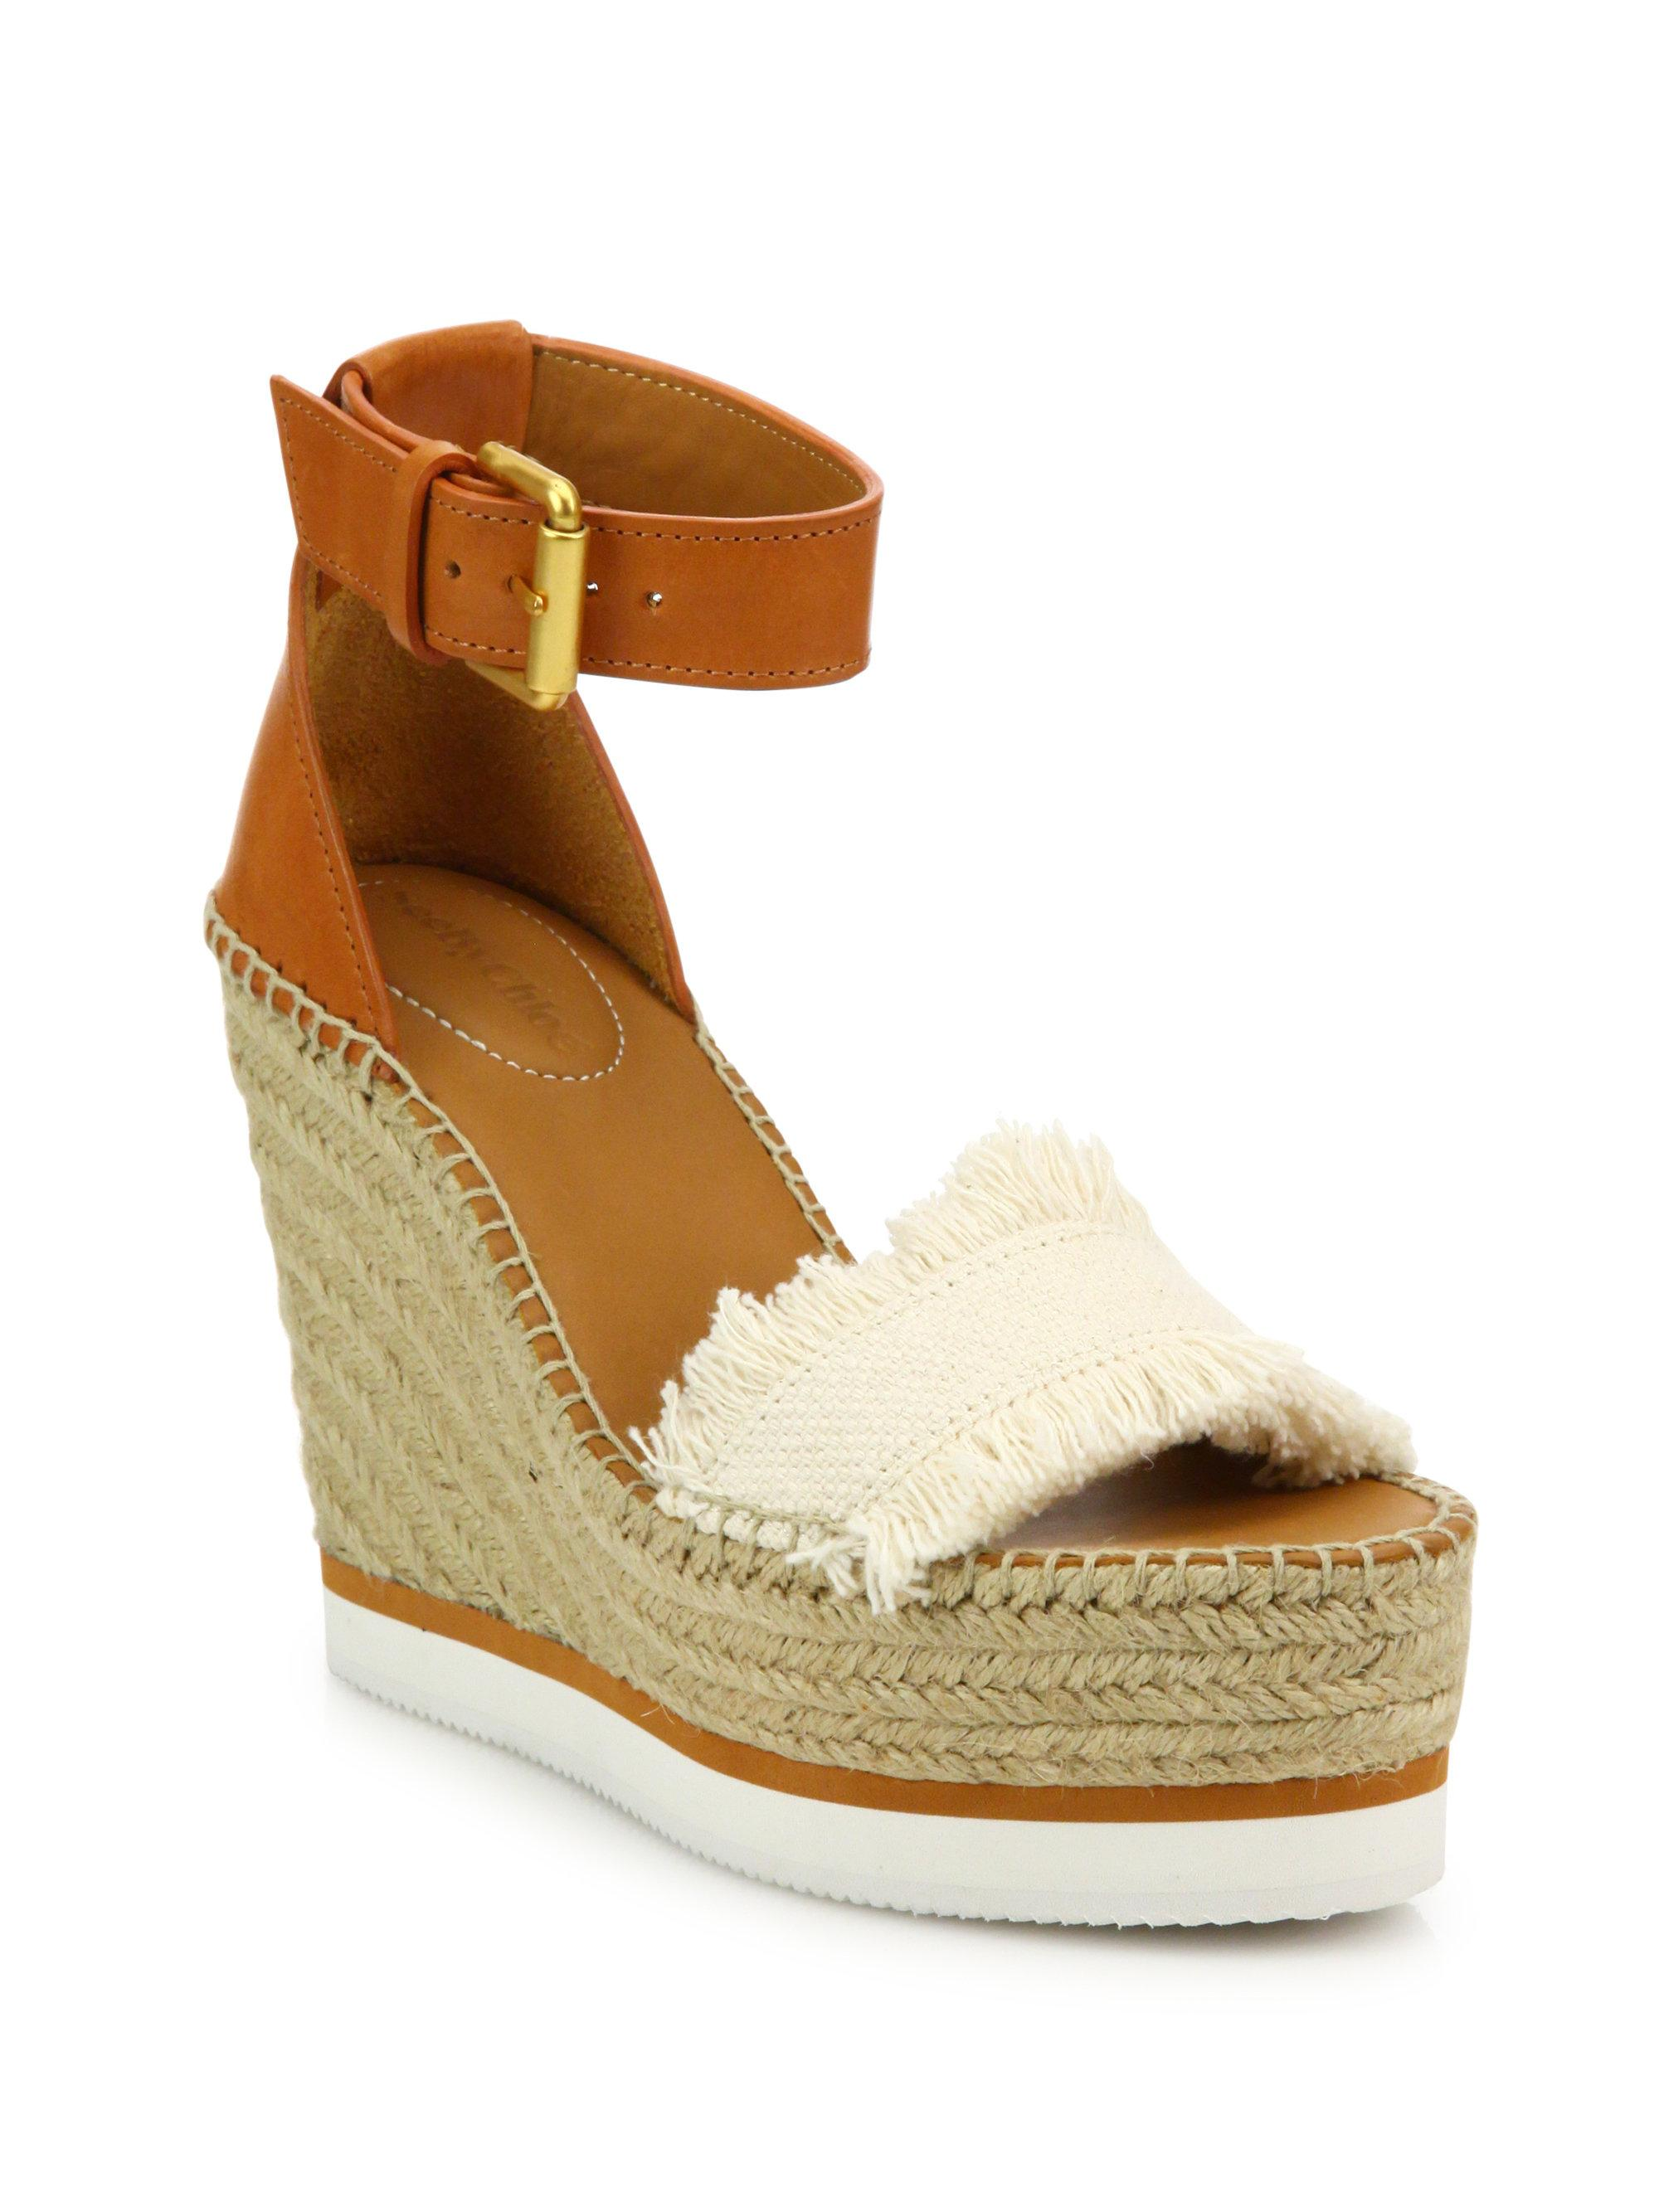 48d3f6f6e35 See By Chloé. Women s Glyn Leather   Frayed Canvas Espadrille Wedge  Platform Sandals